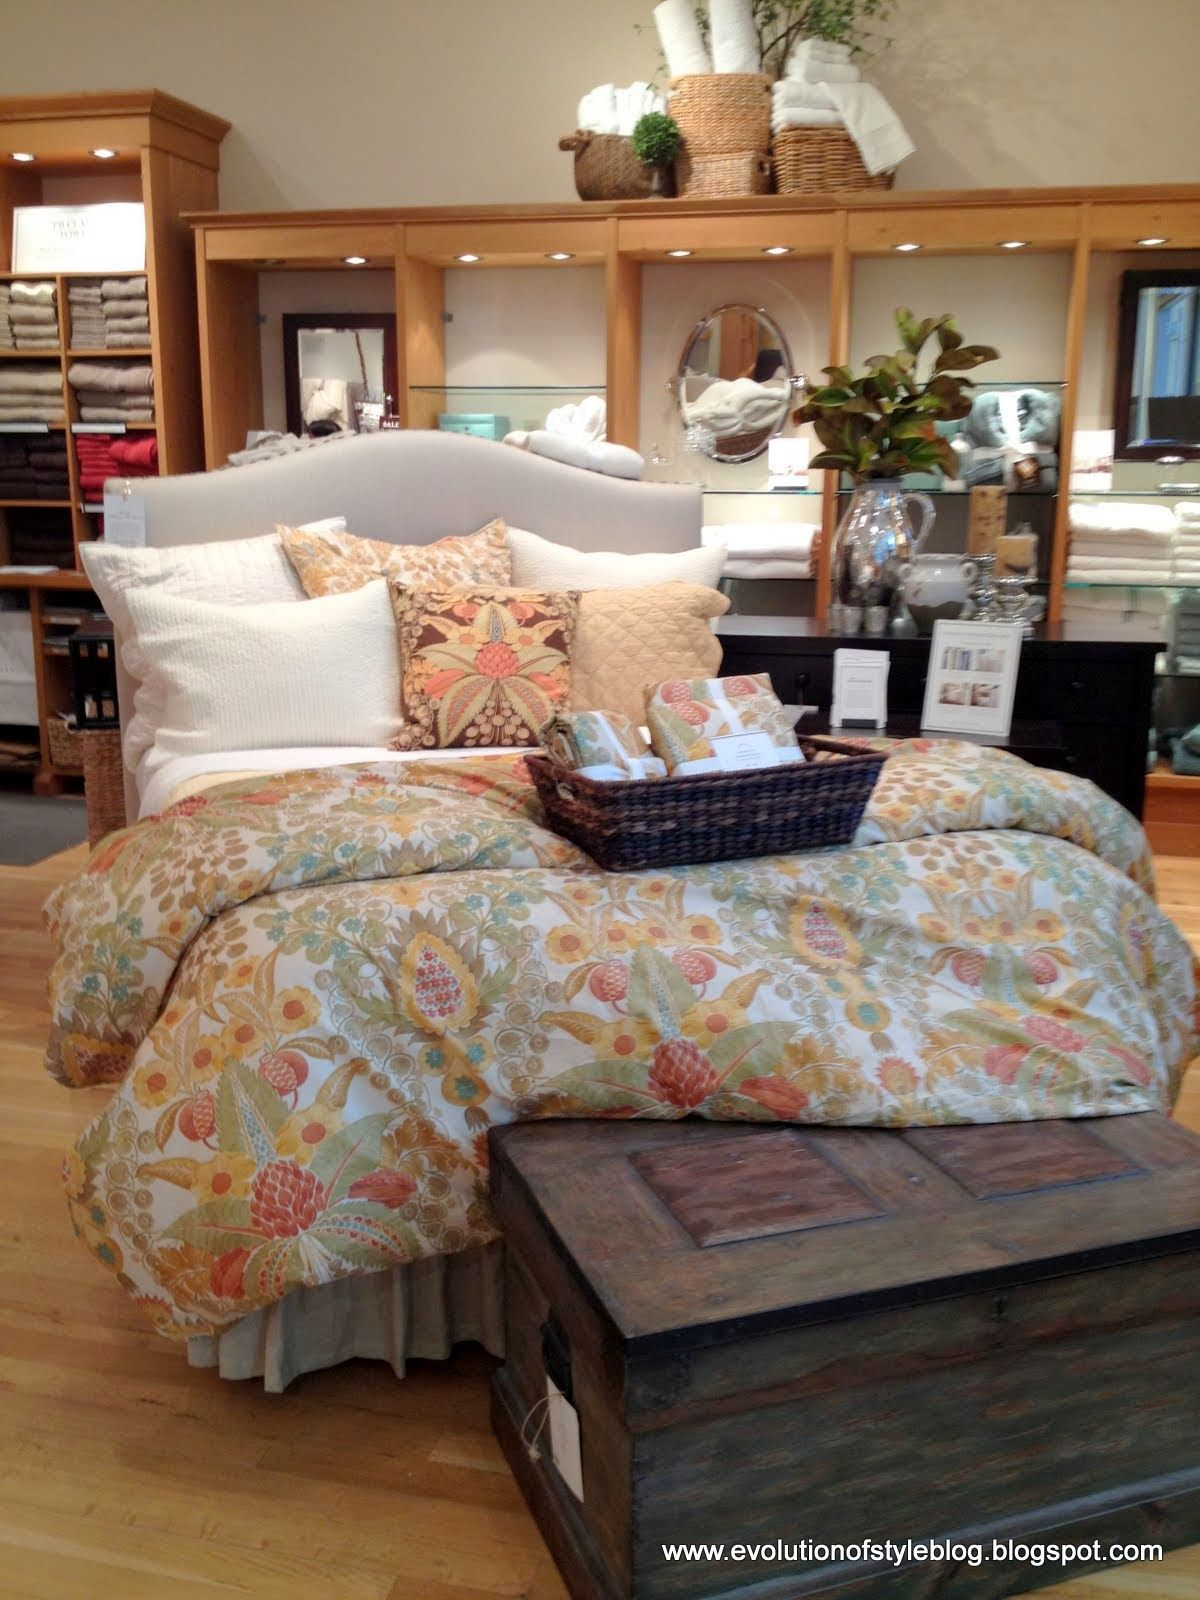 Classic Fall Season Bedroom Design with Amazing Bed Furniture have Soft Gray Headboard and Beautiful Flower Patterns Ideas for Fall Season Bedroom Design